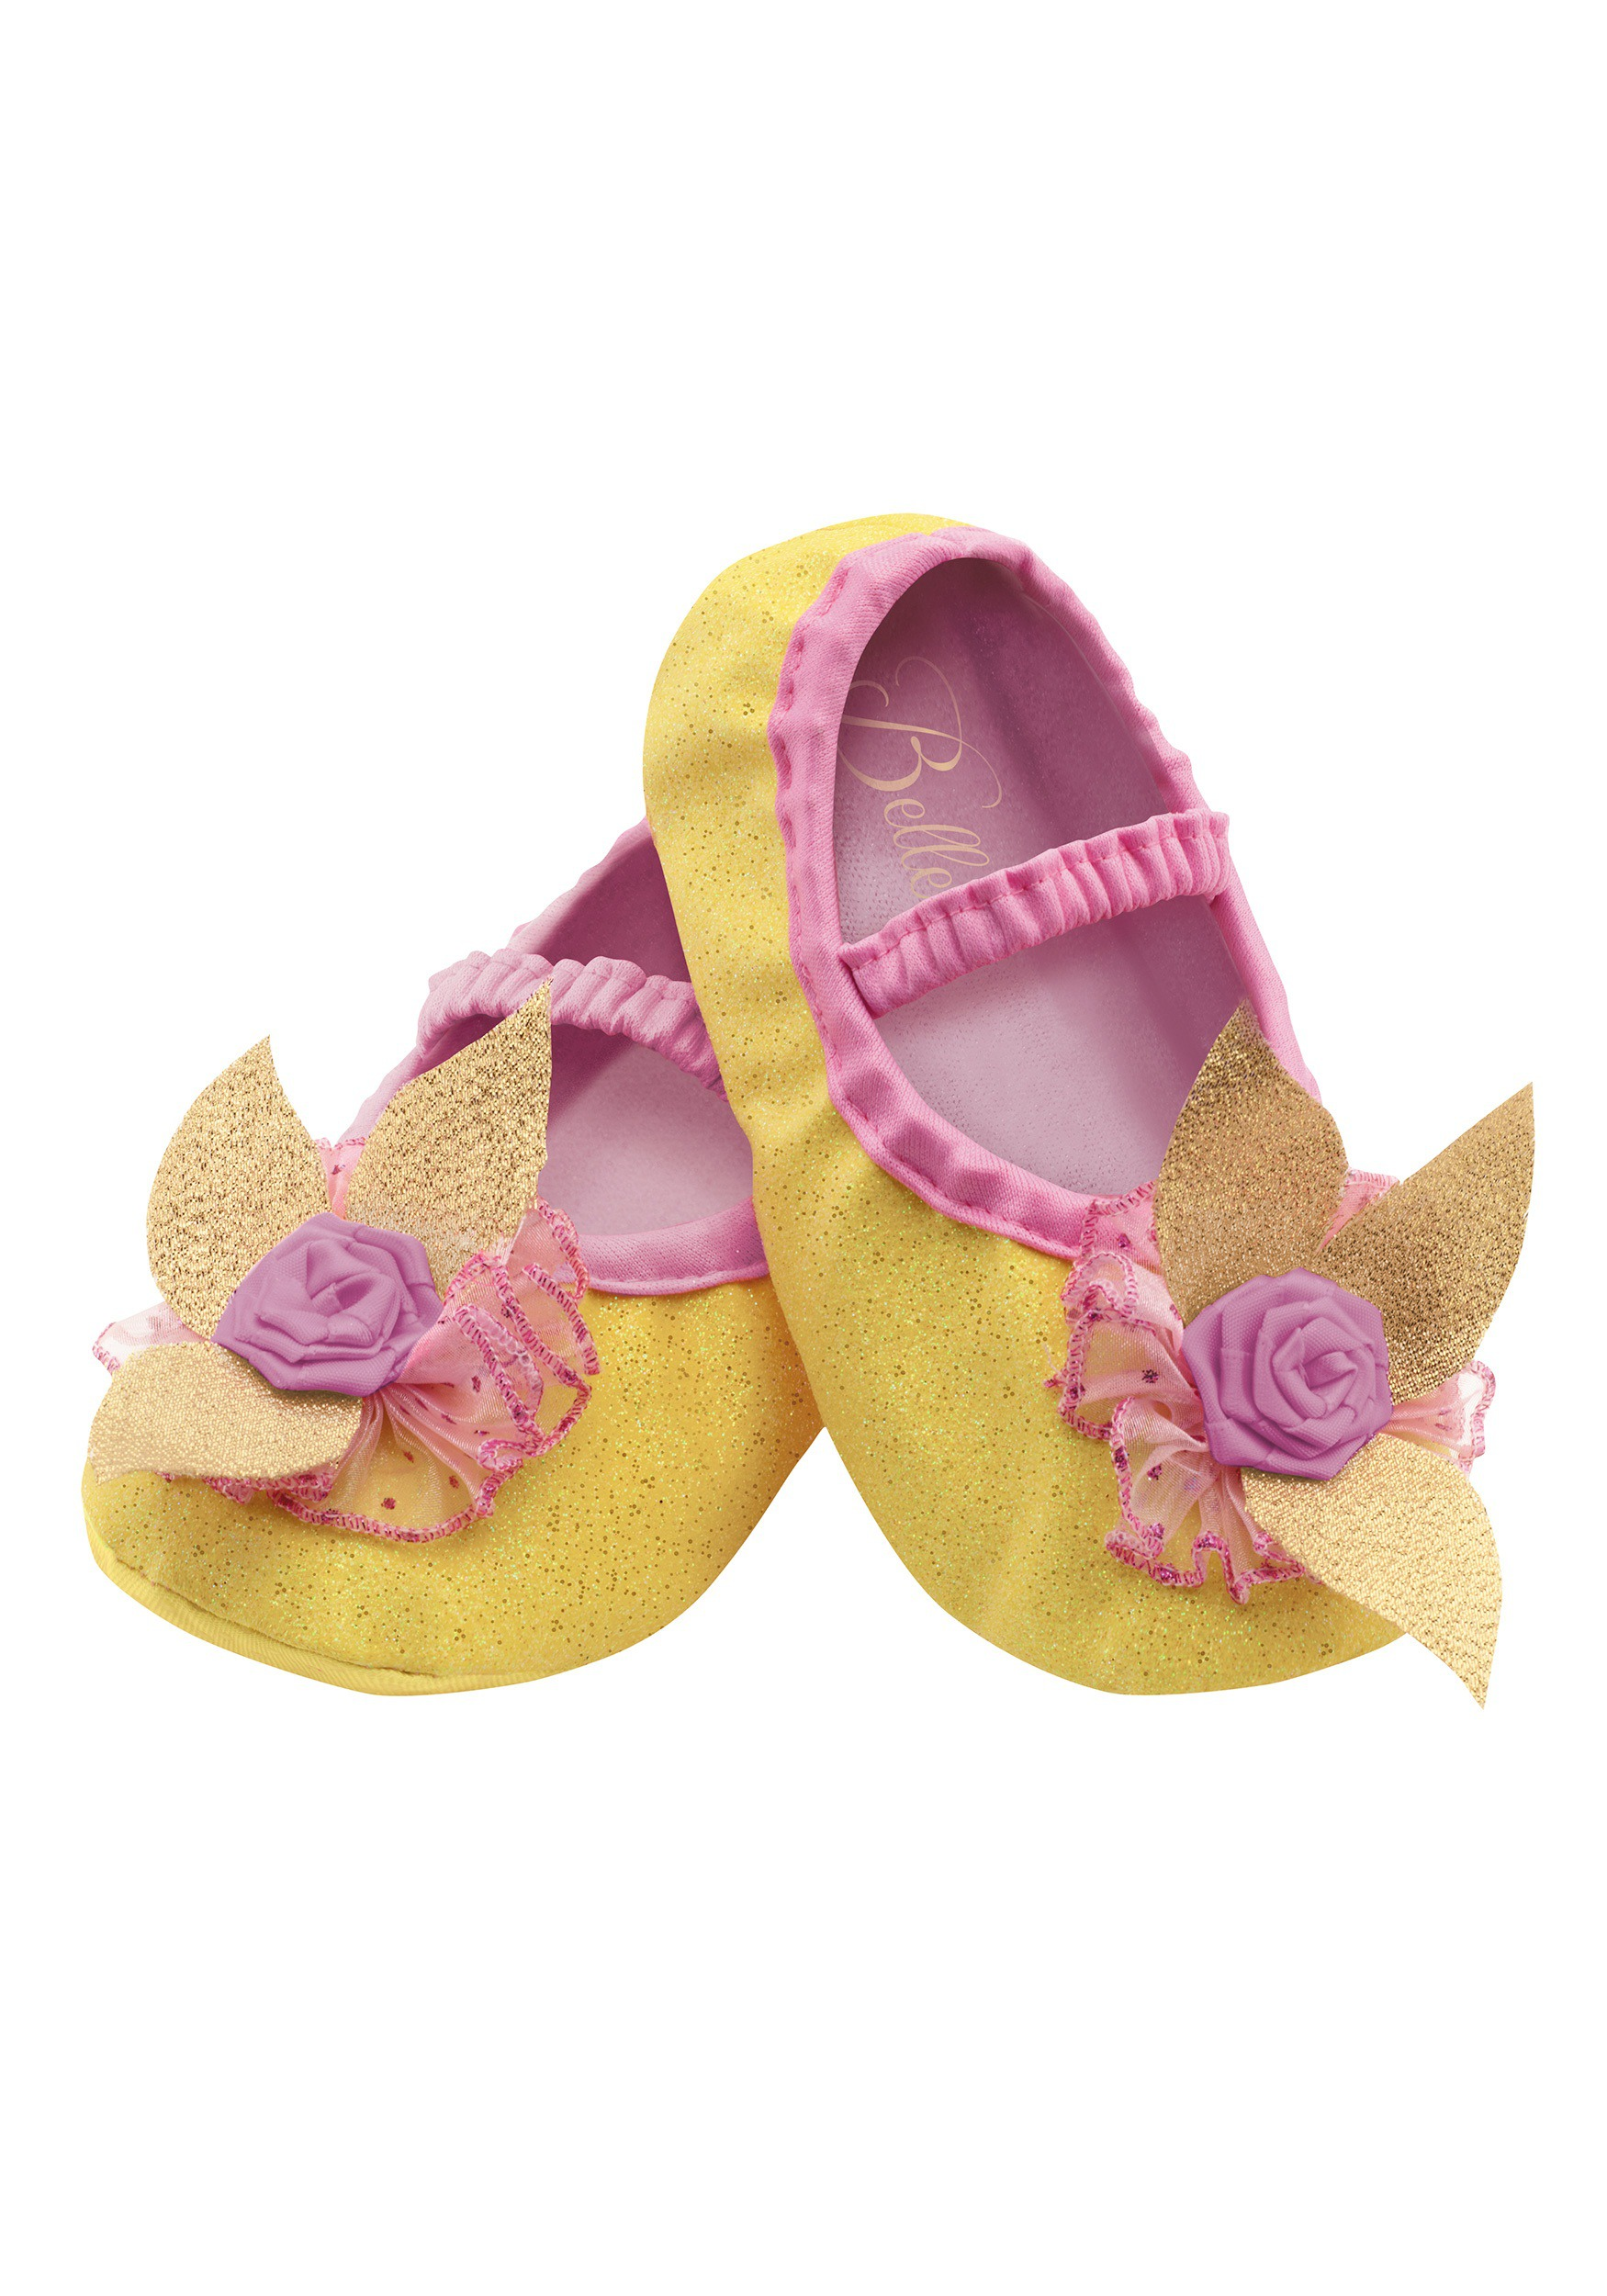 Belle Toddler Slippers